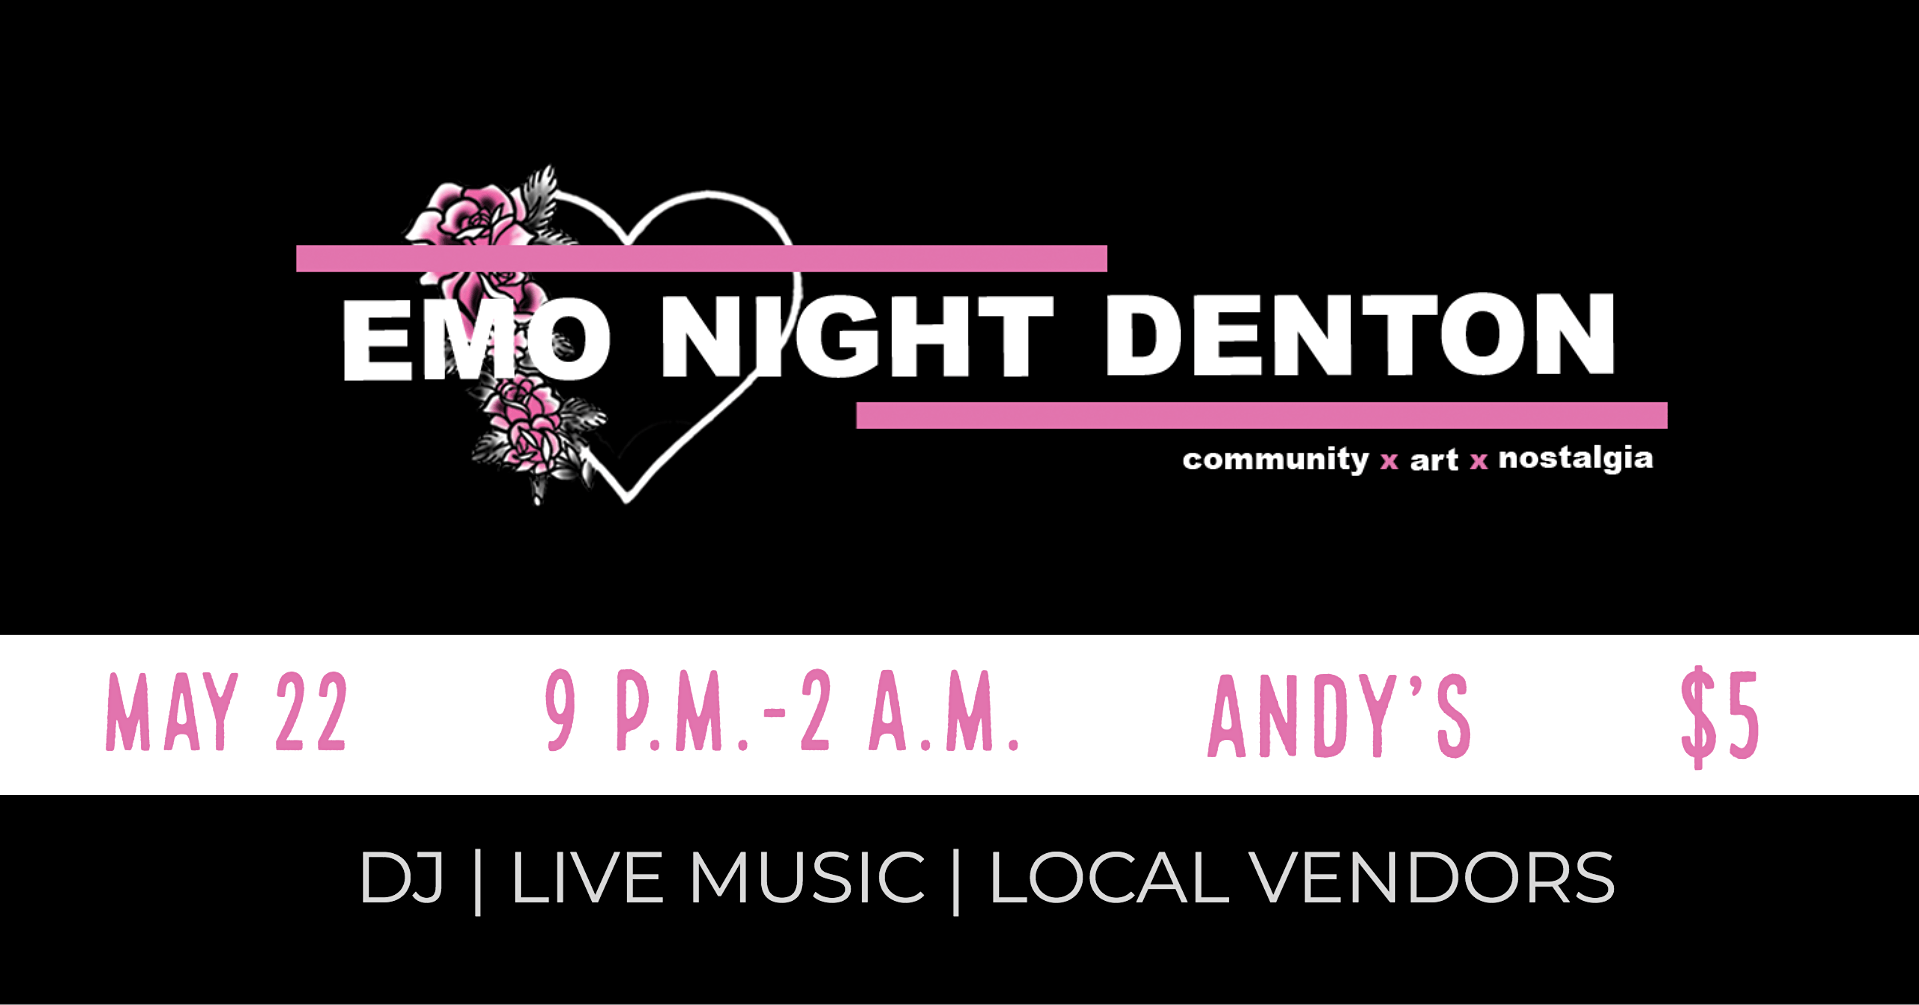 Emo Night Denton